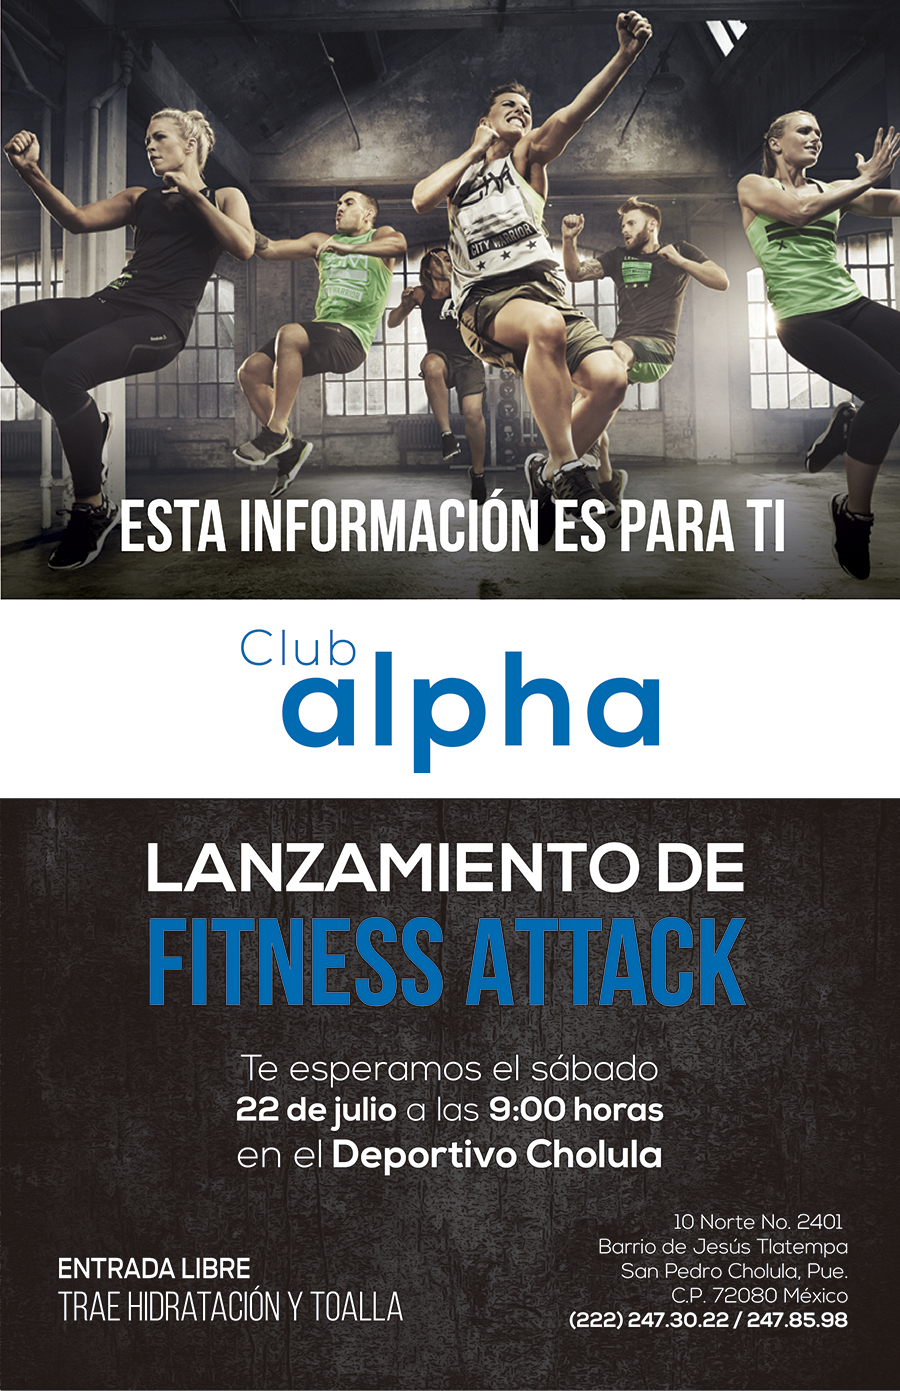 fitness attack cholula